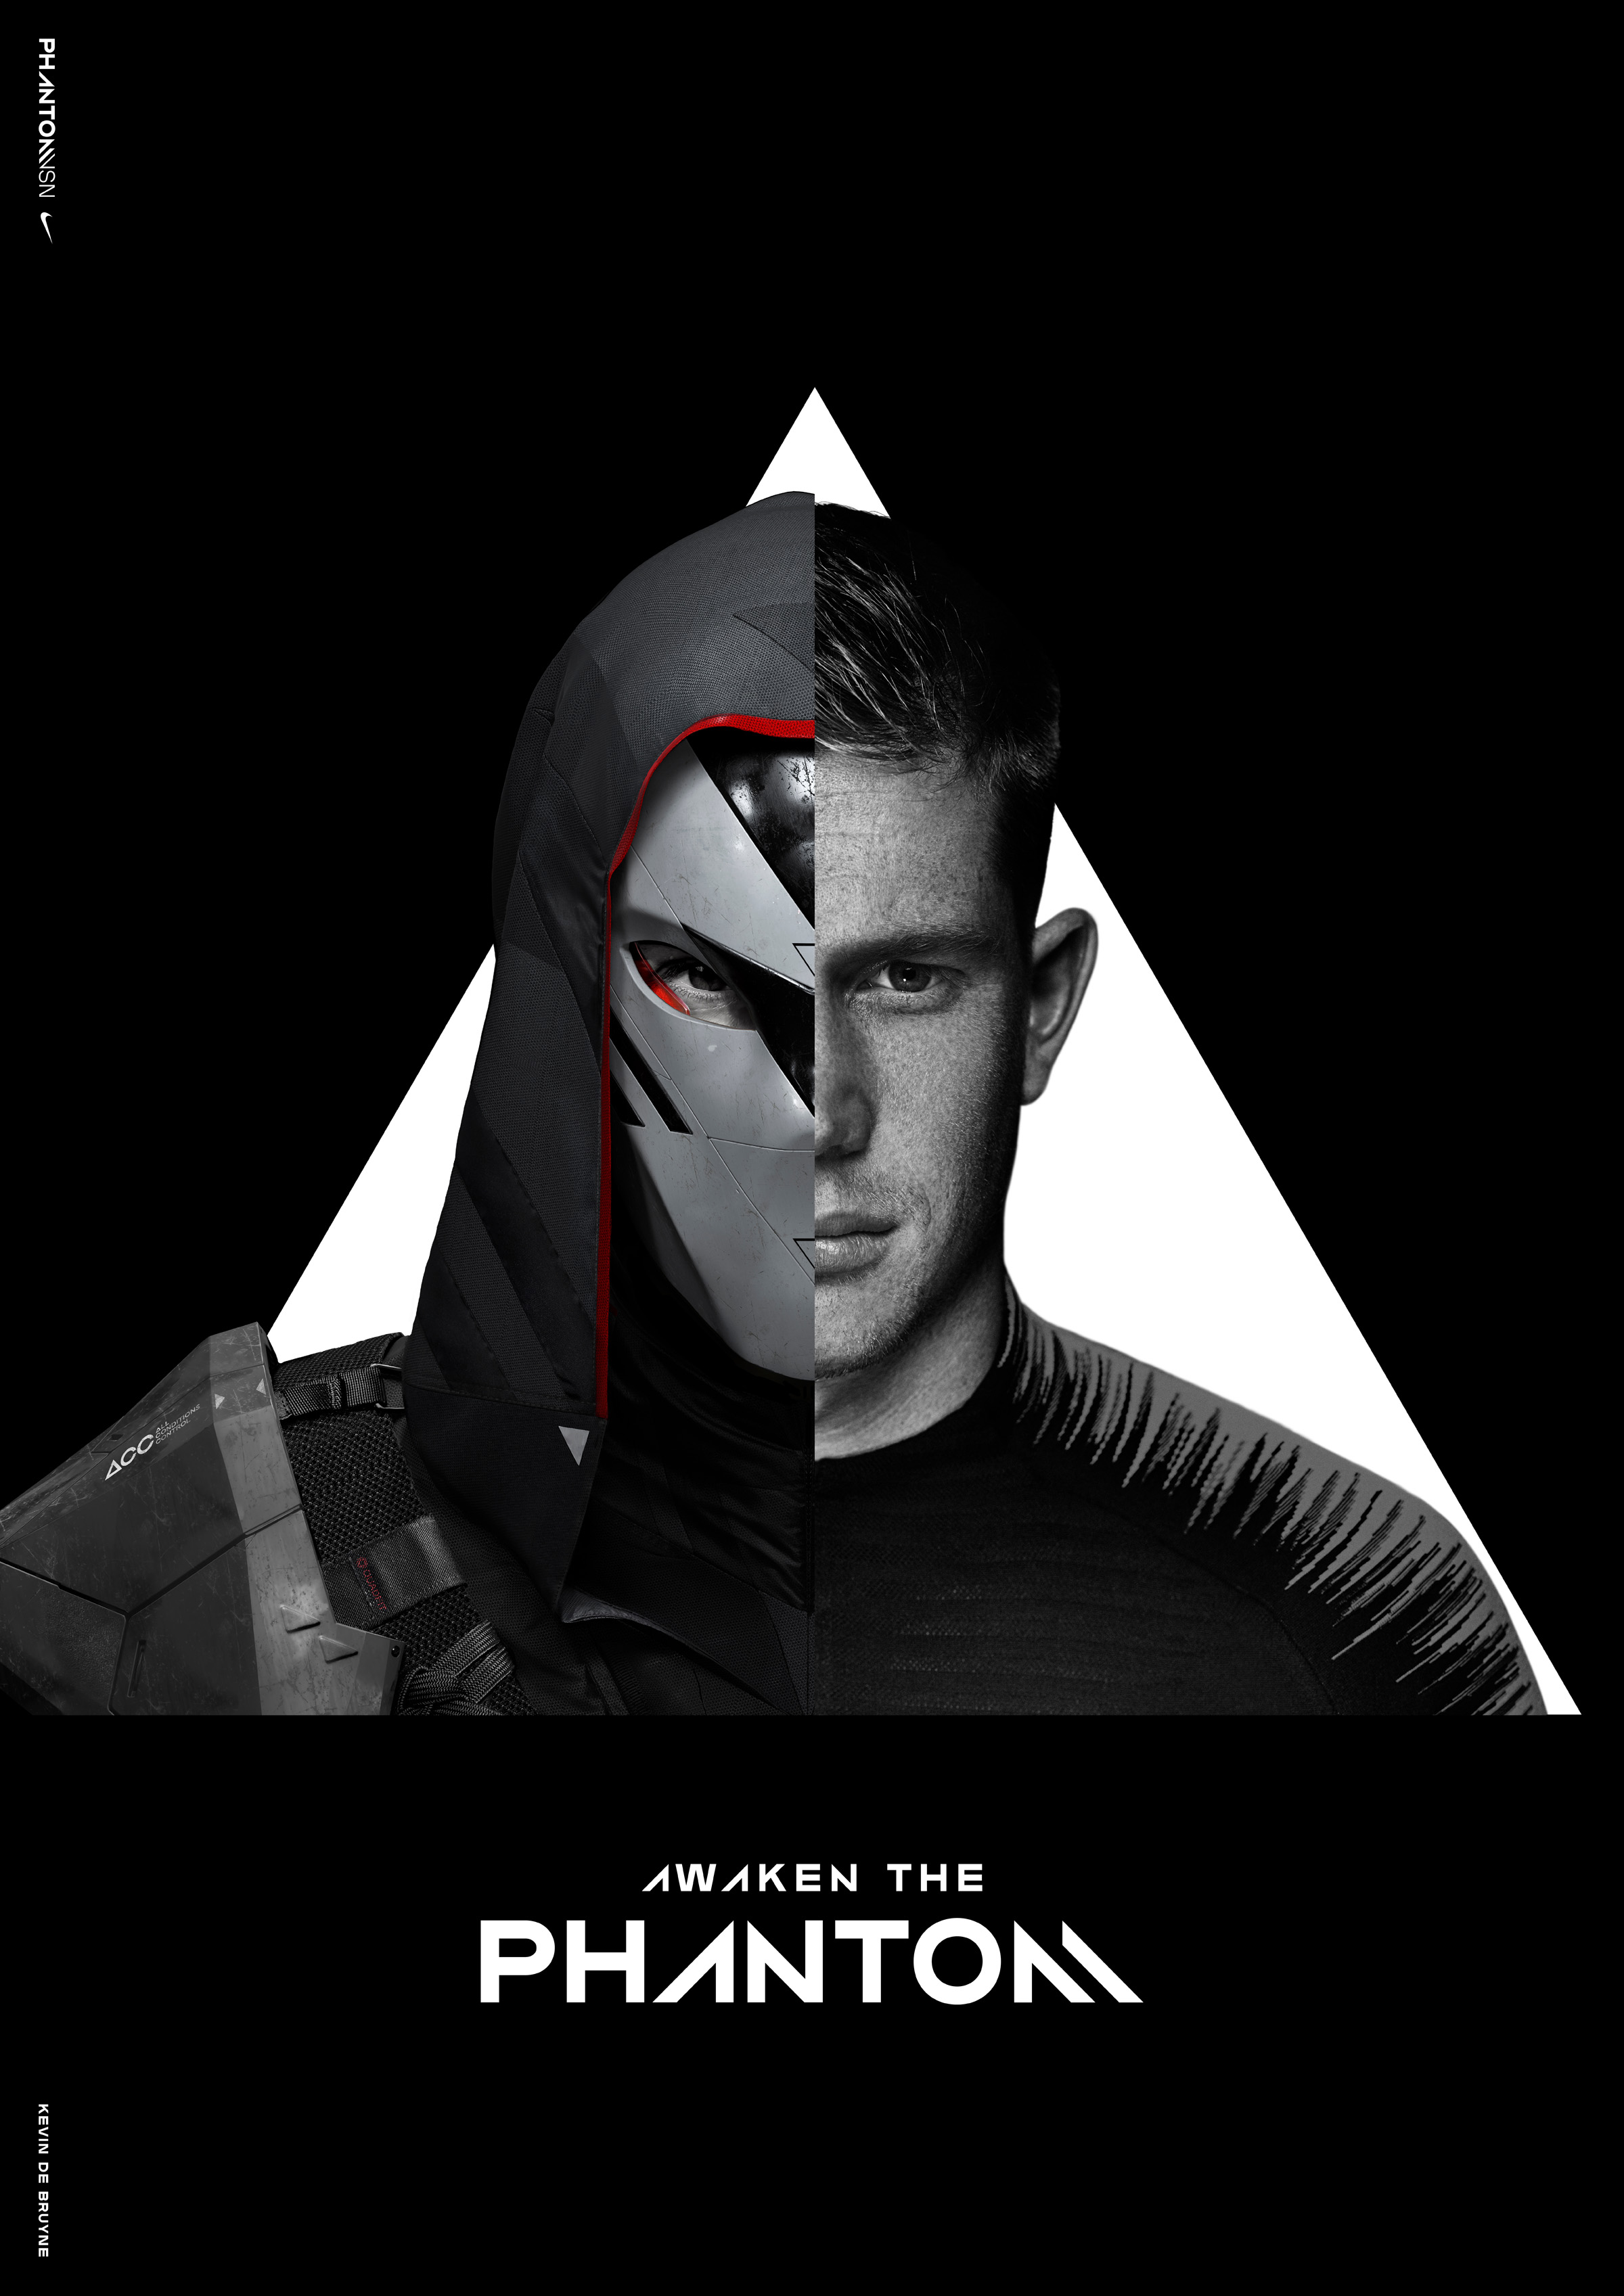 FA18_GFB_KDB_ALTER_EGO_PHANTOM_POSTERS_ASSASSIN_01